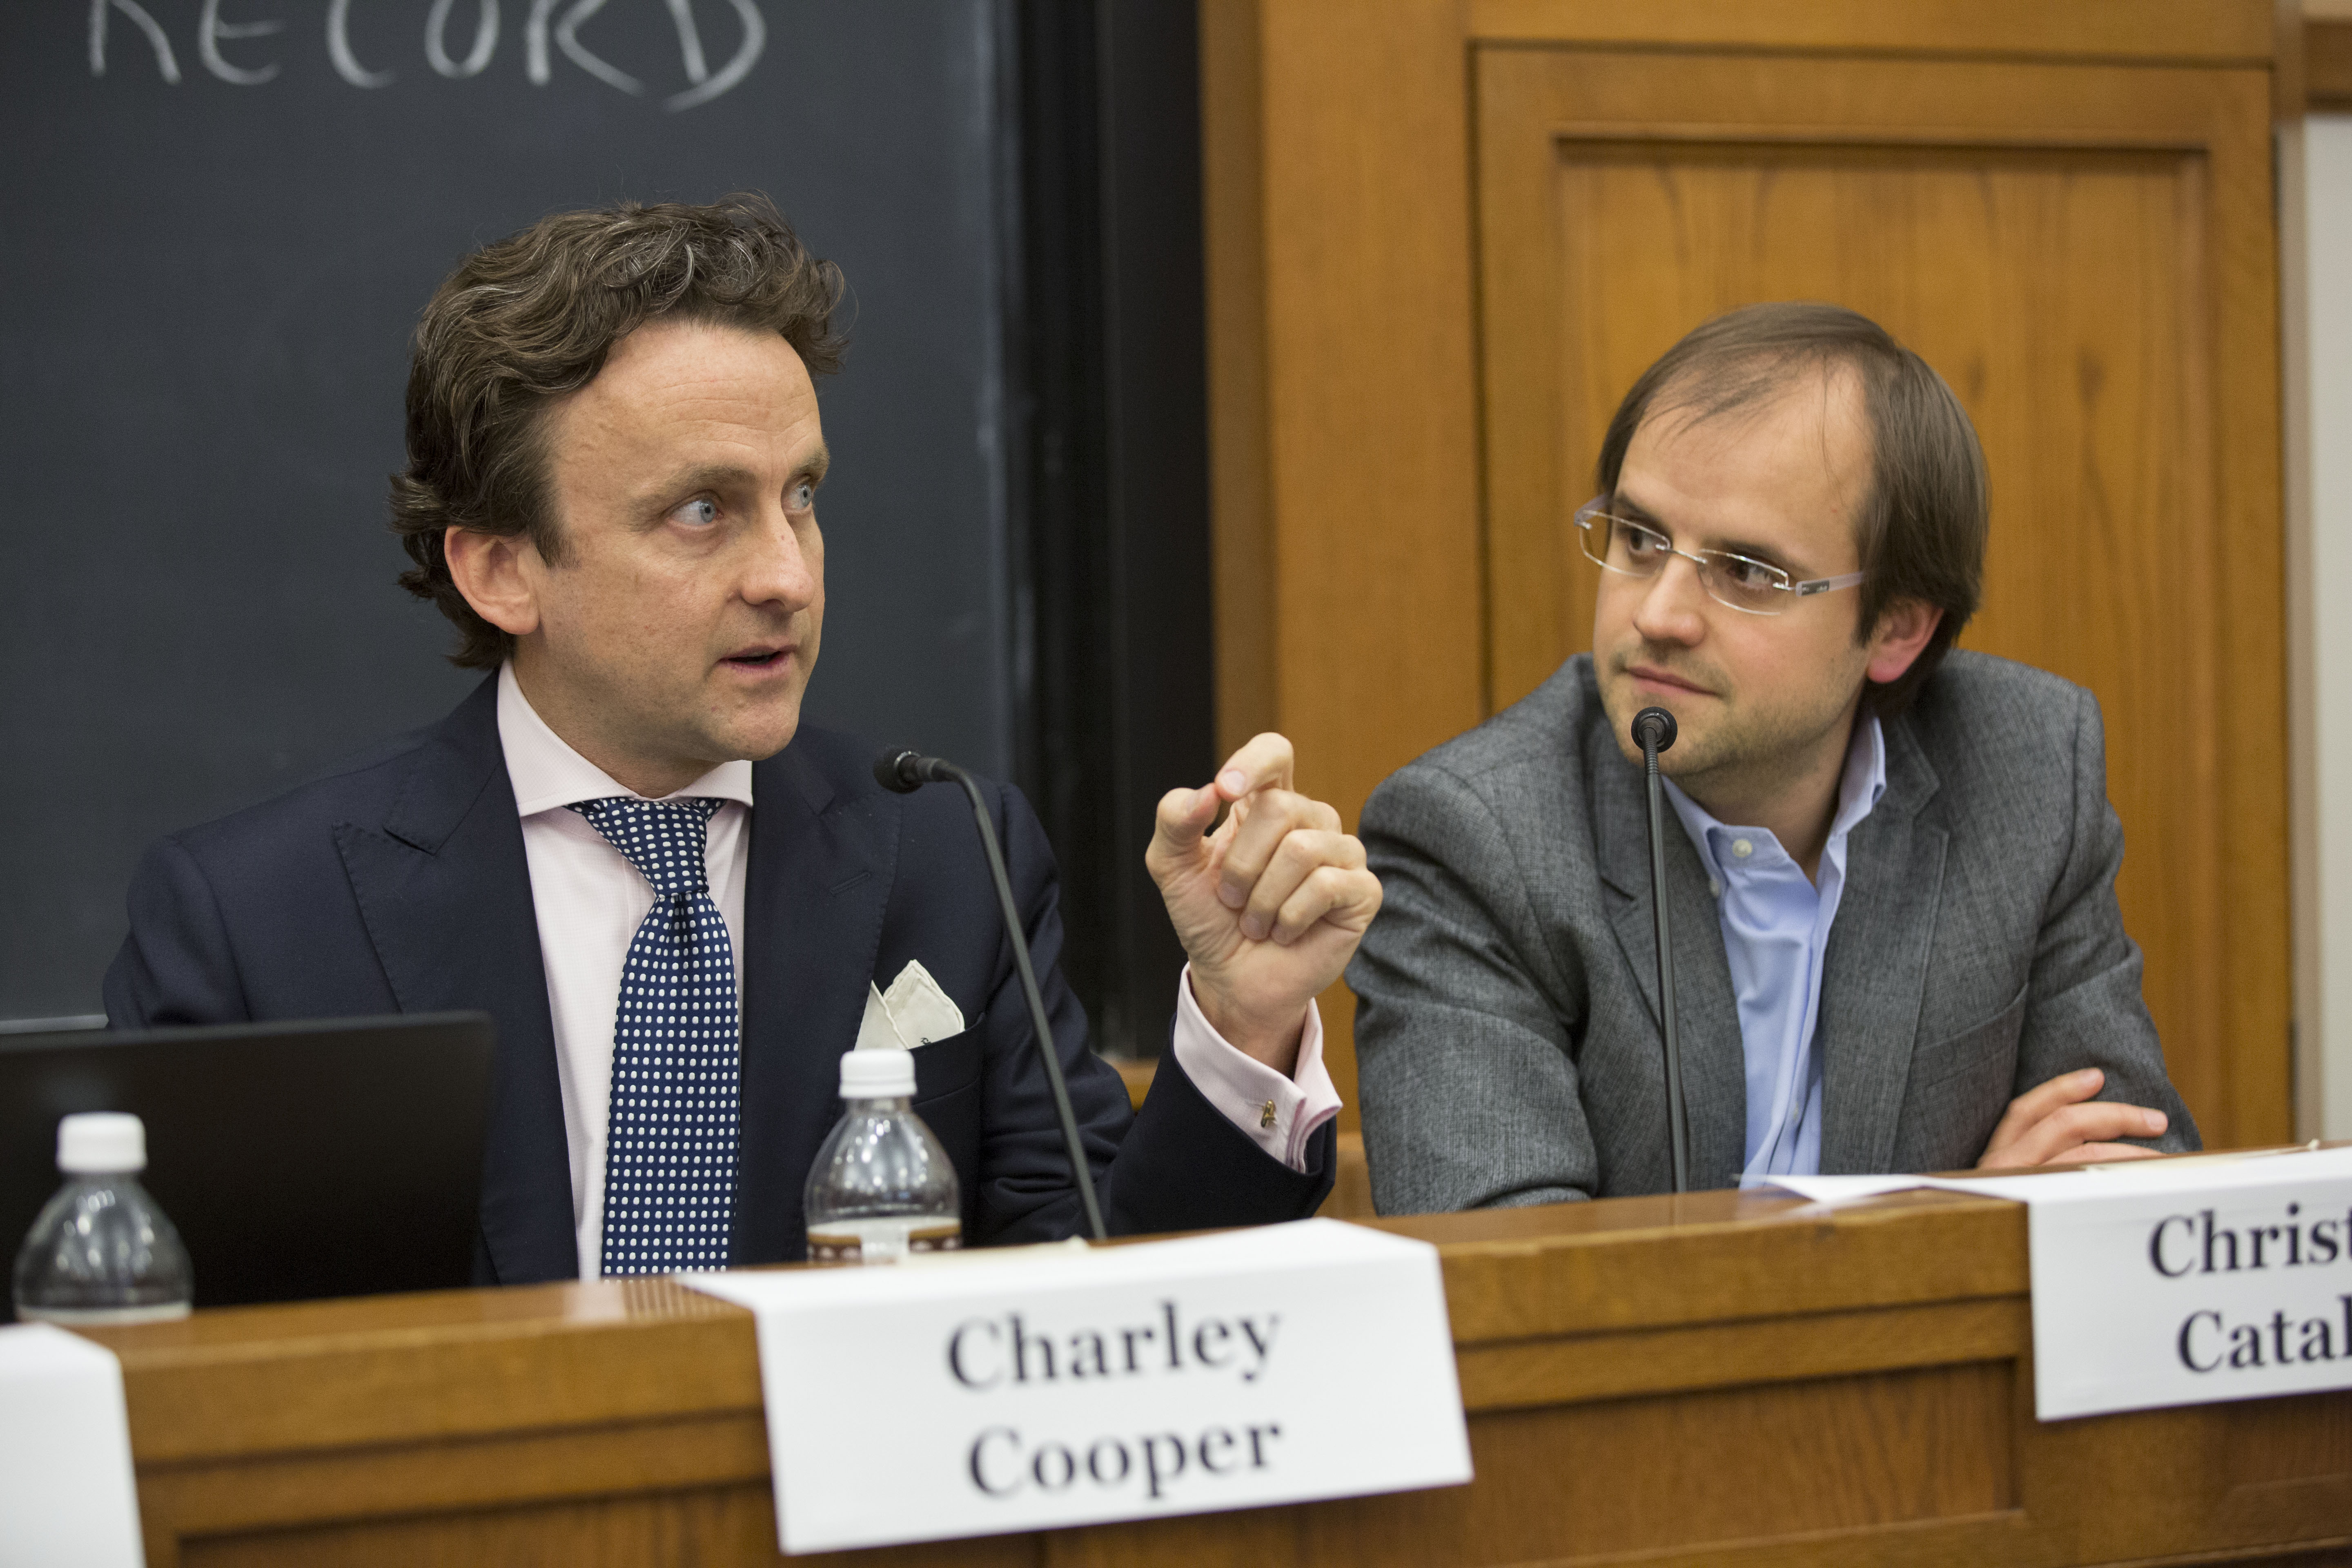 Charley Cooper and MIT Sloan Prof. Christian Catalini